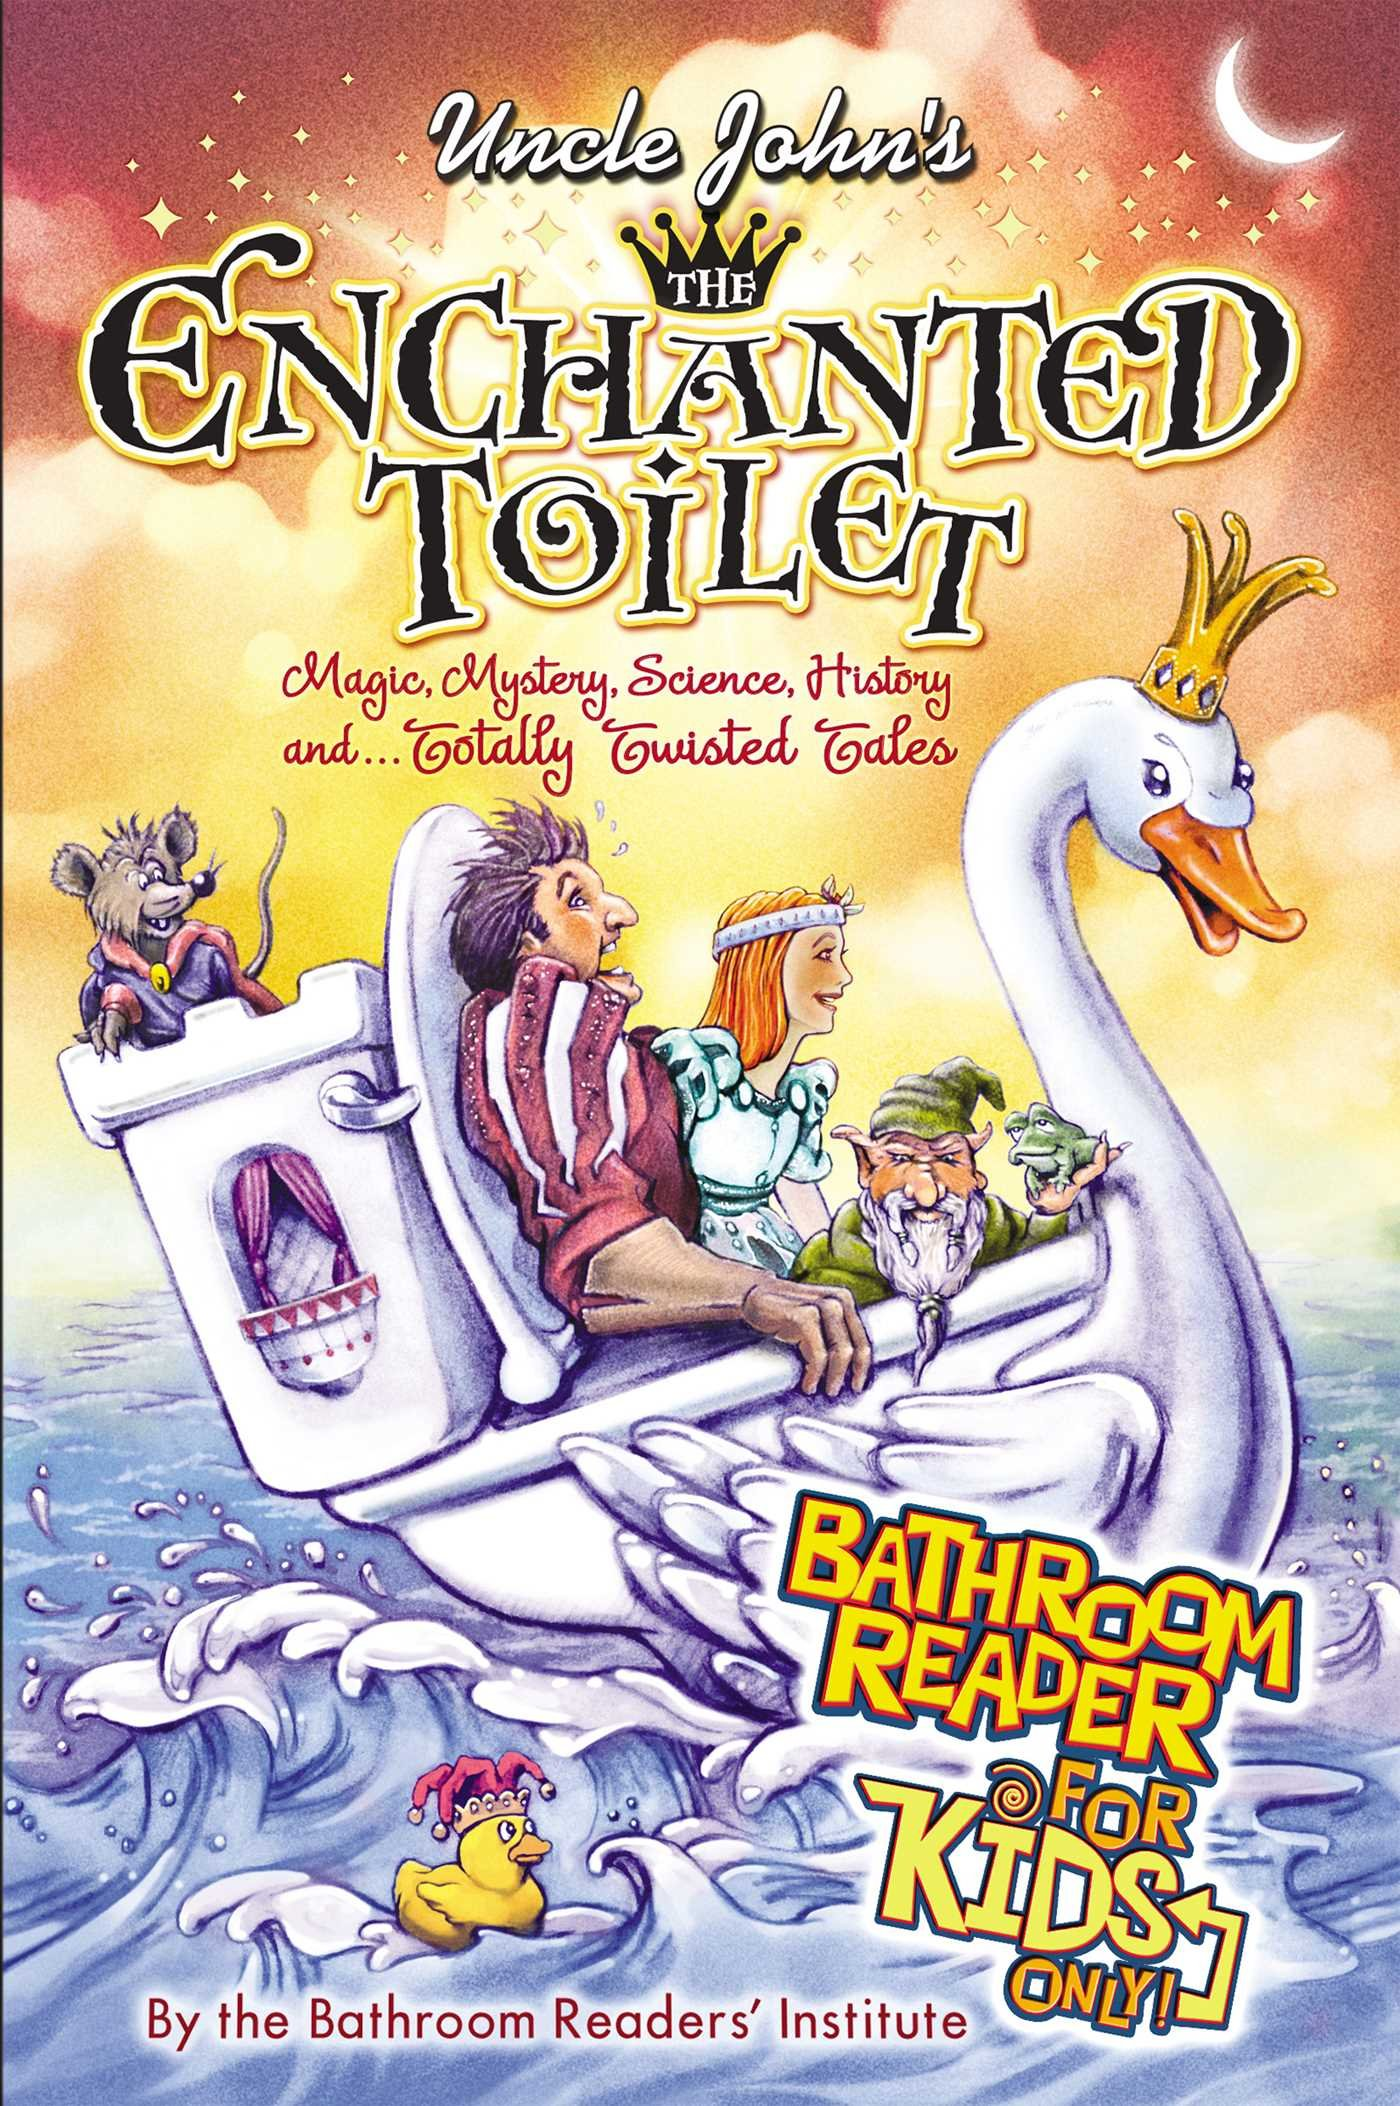 Uncle Johns The Enchanted Toilet Bathroom Reader for Kids ...